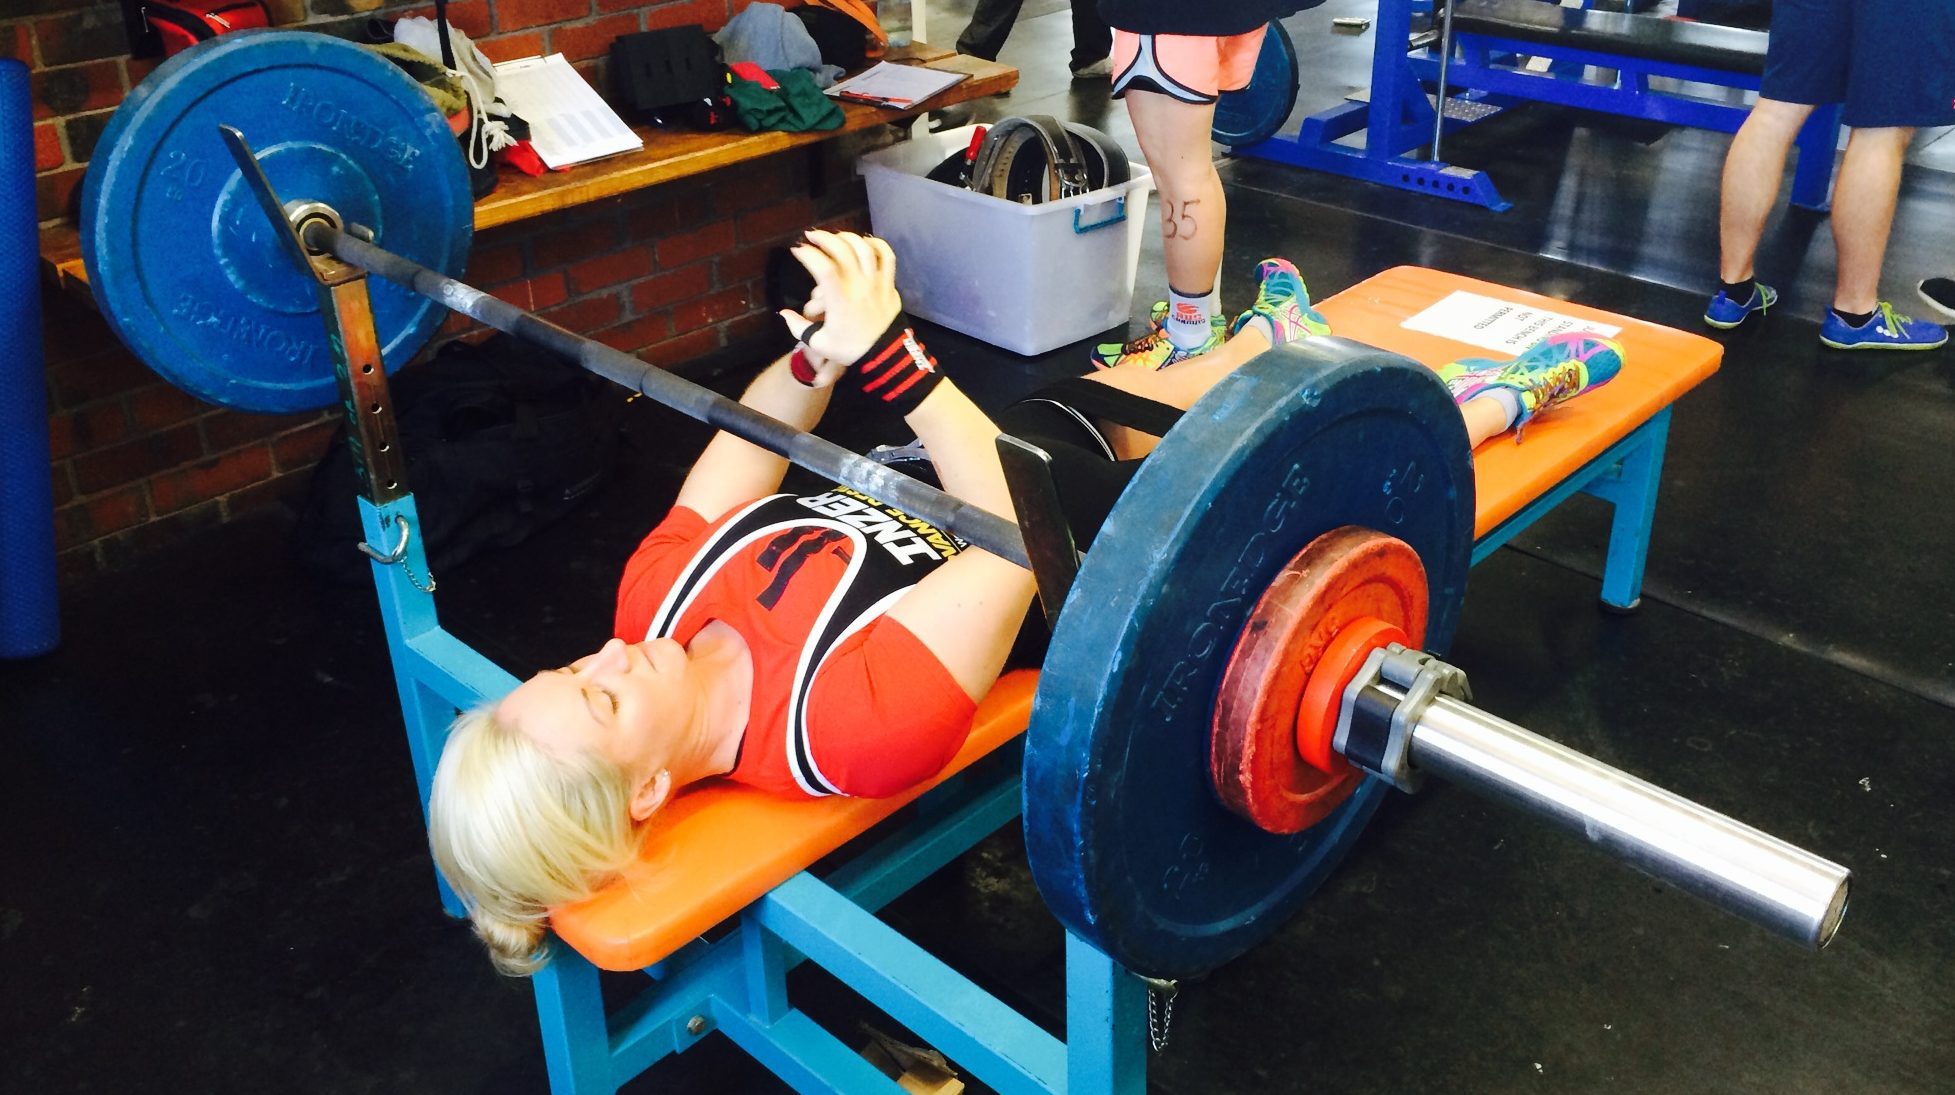 Every lift is worth the weight for Jessica Gray